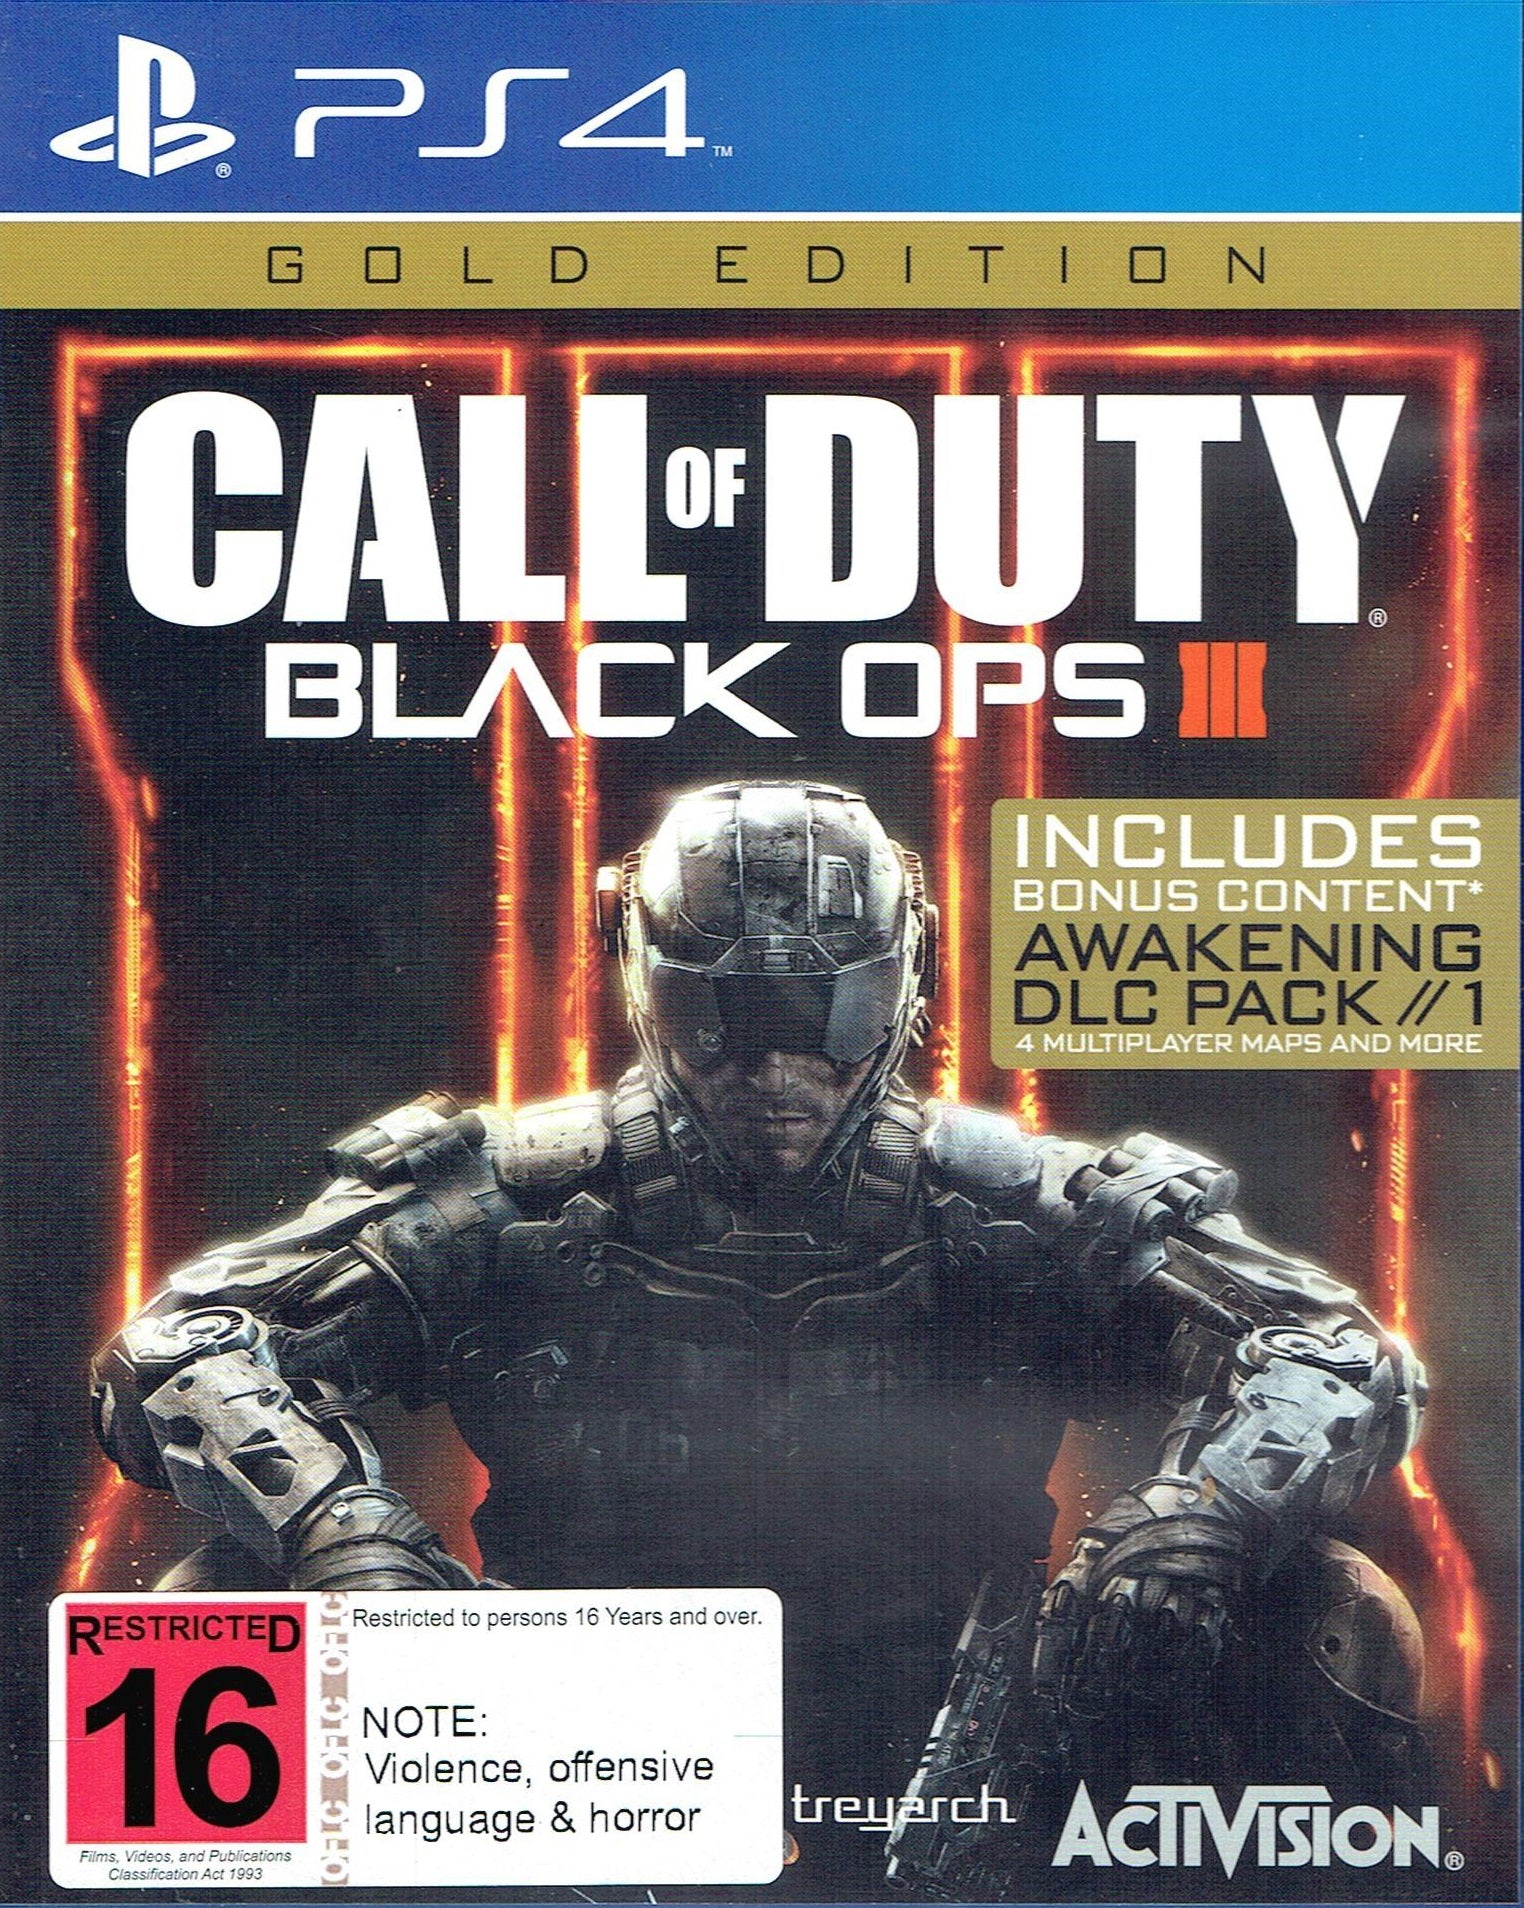 Call of Duty: Black Ops III - Gold Edition PS4